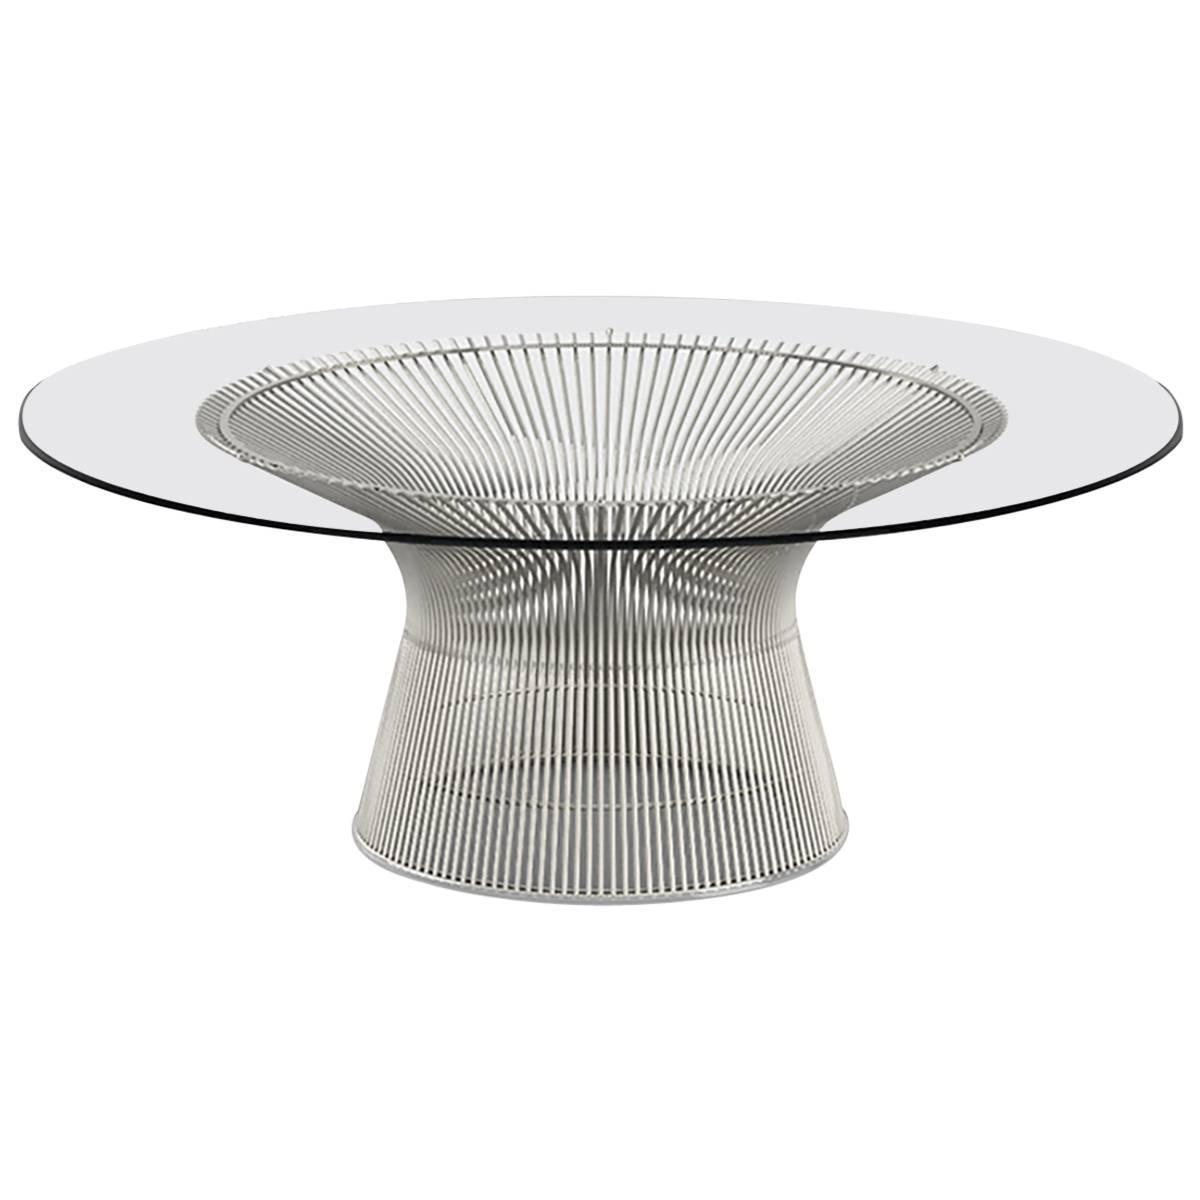 Knoll Warren Platner Coffee Table For Sale At 1stdibs